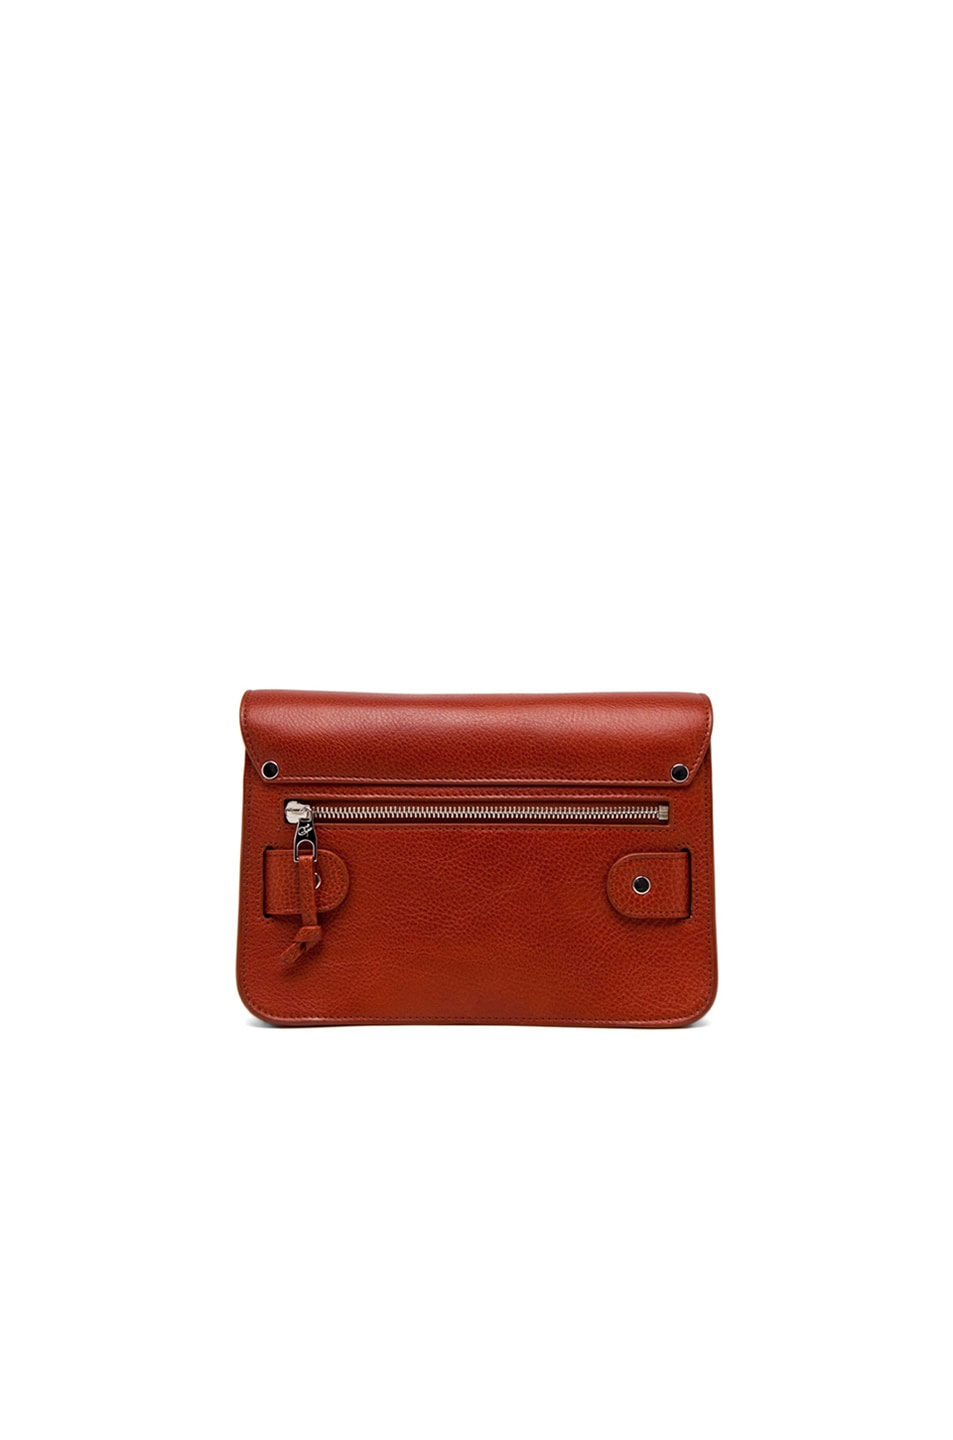 Image 3 of Proenza Schouler Mini PS11 Classic Bag in Saddle